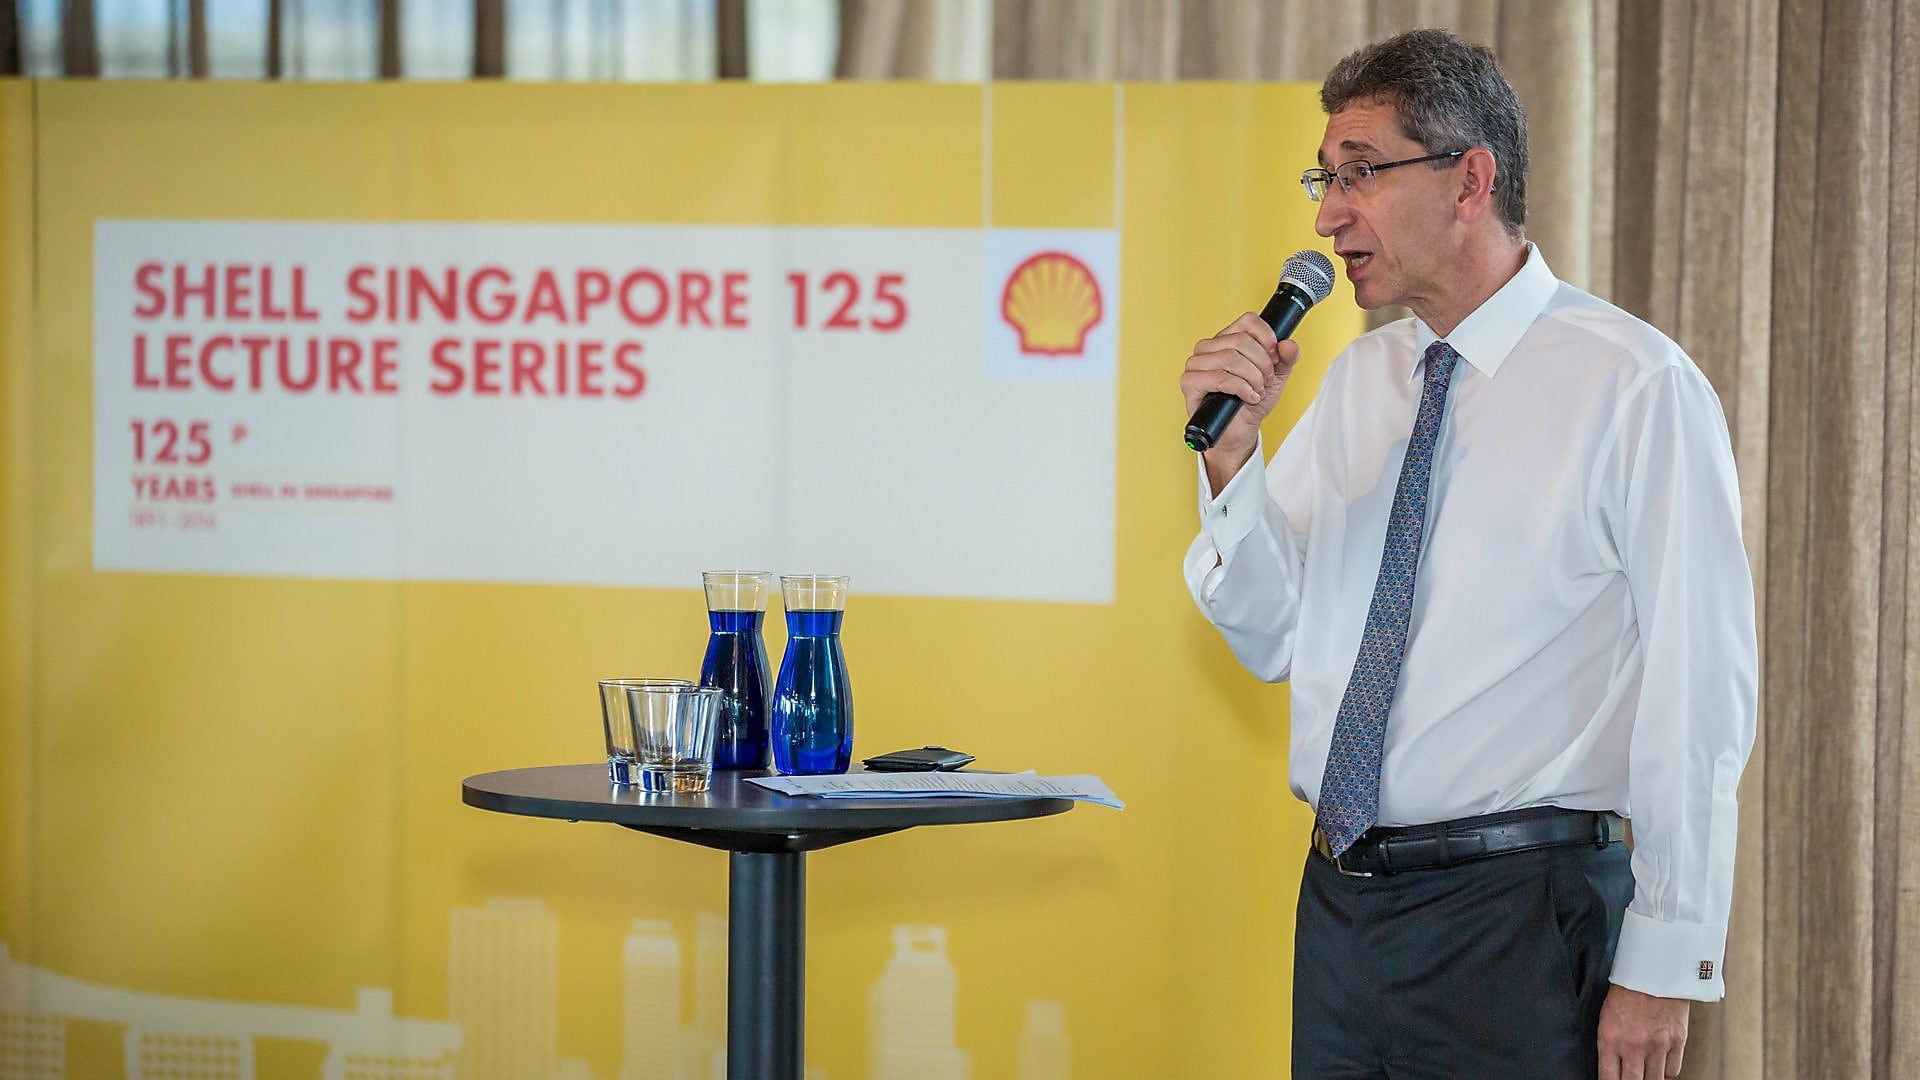 Mark Gainsborough, Shell Executive Vice President, Global Commercial gave the welcome address, highlighting Shell's successes in Singapore over the last 125 years.